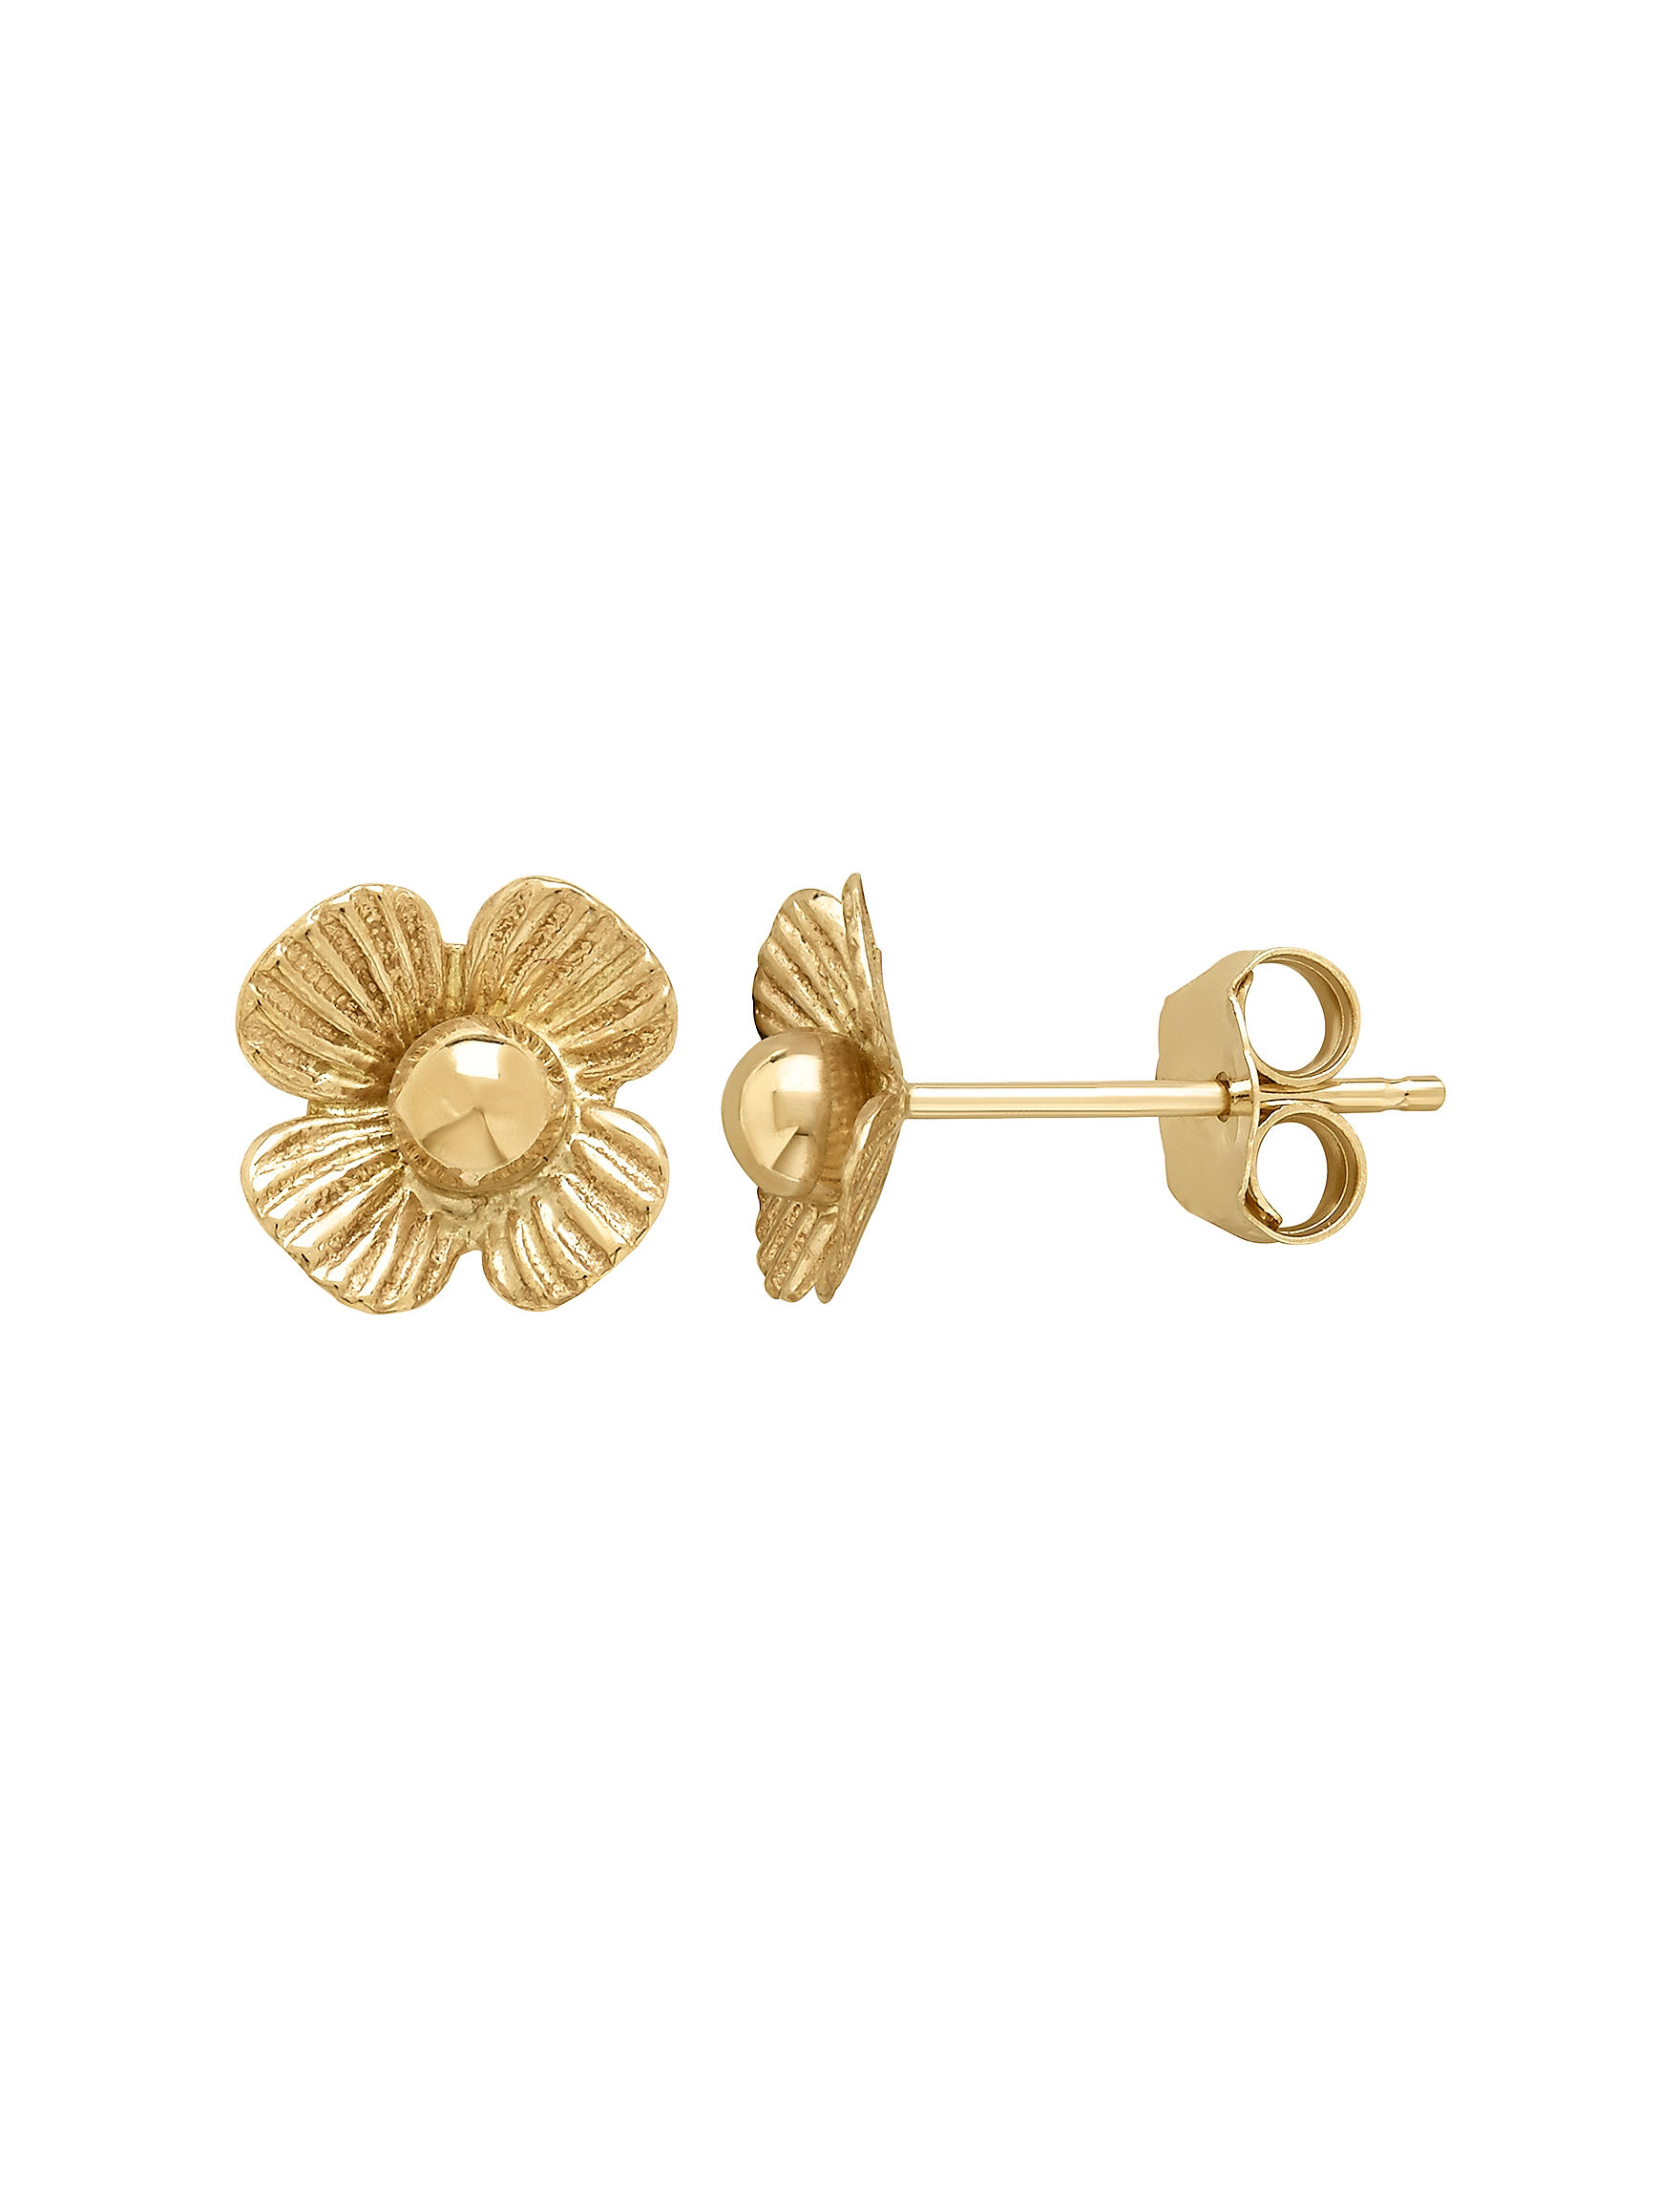 Aurafin Oro America Gold Studs Earrings Fine Jewelry